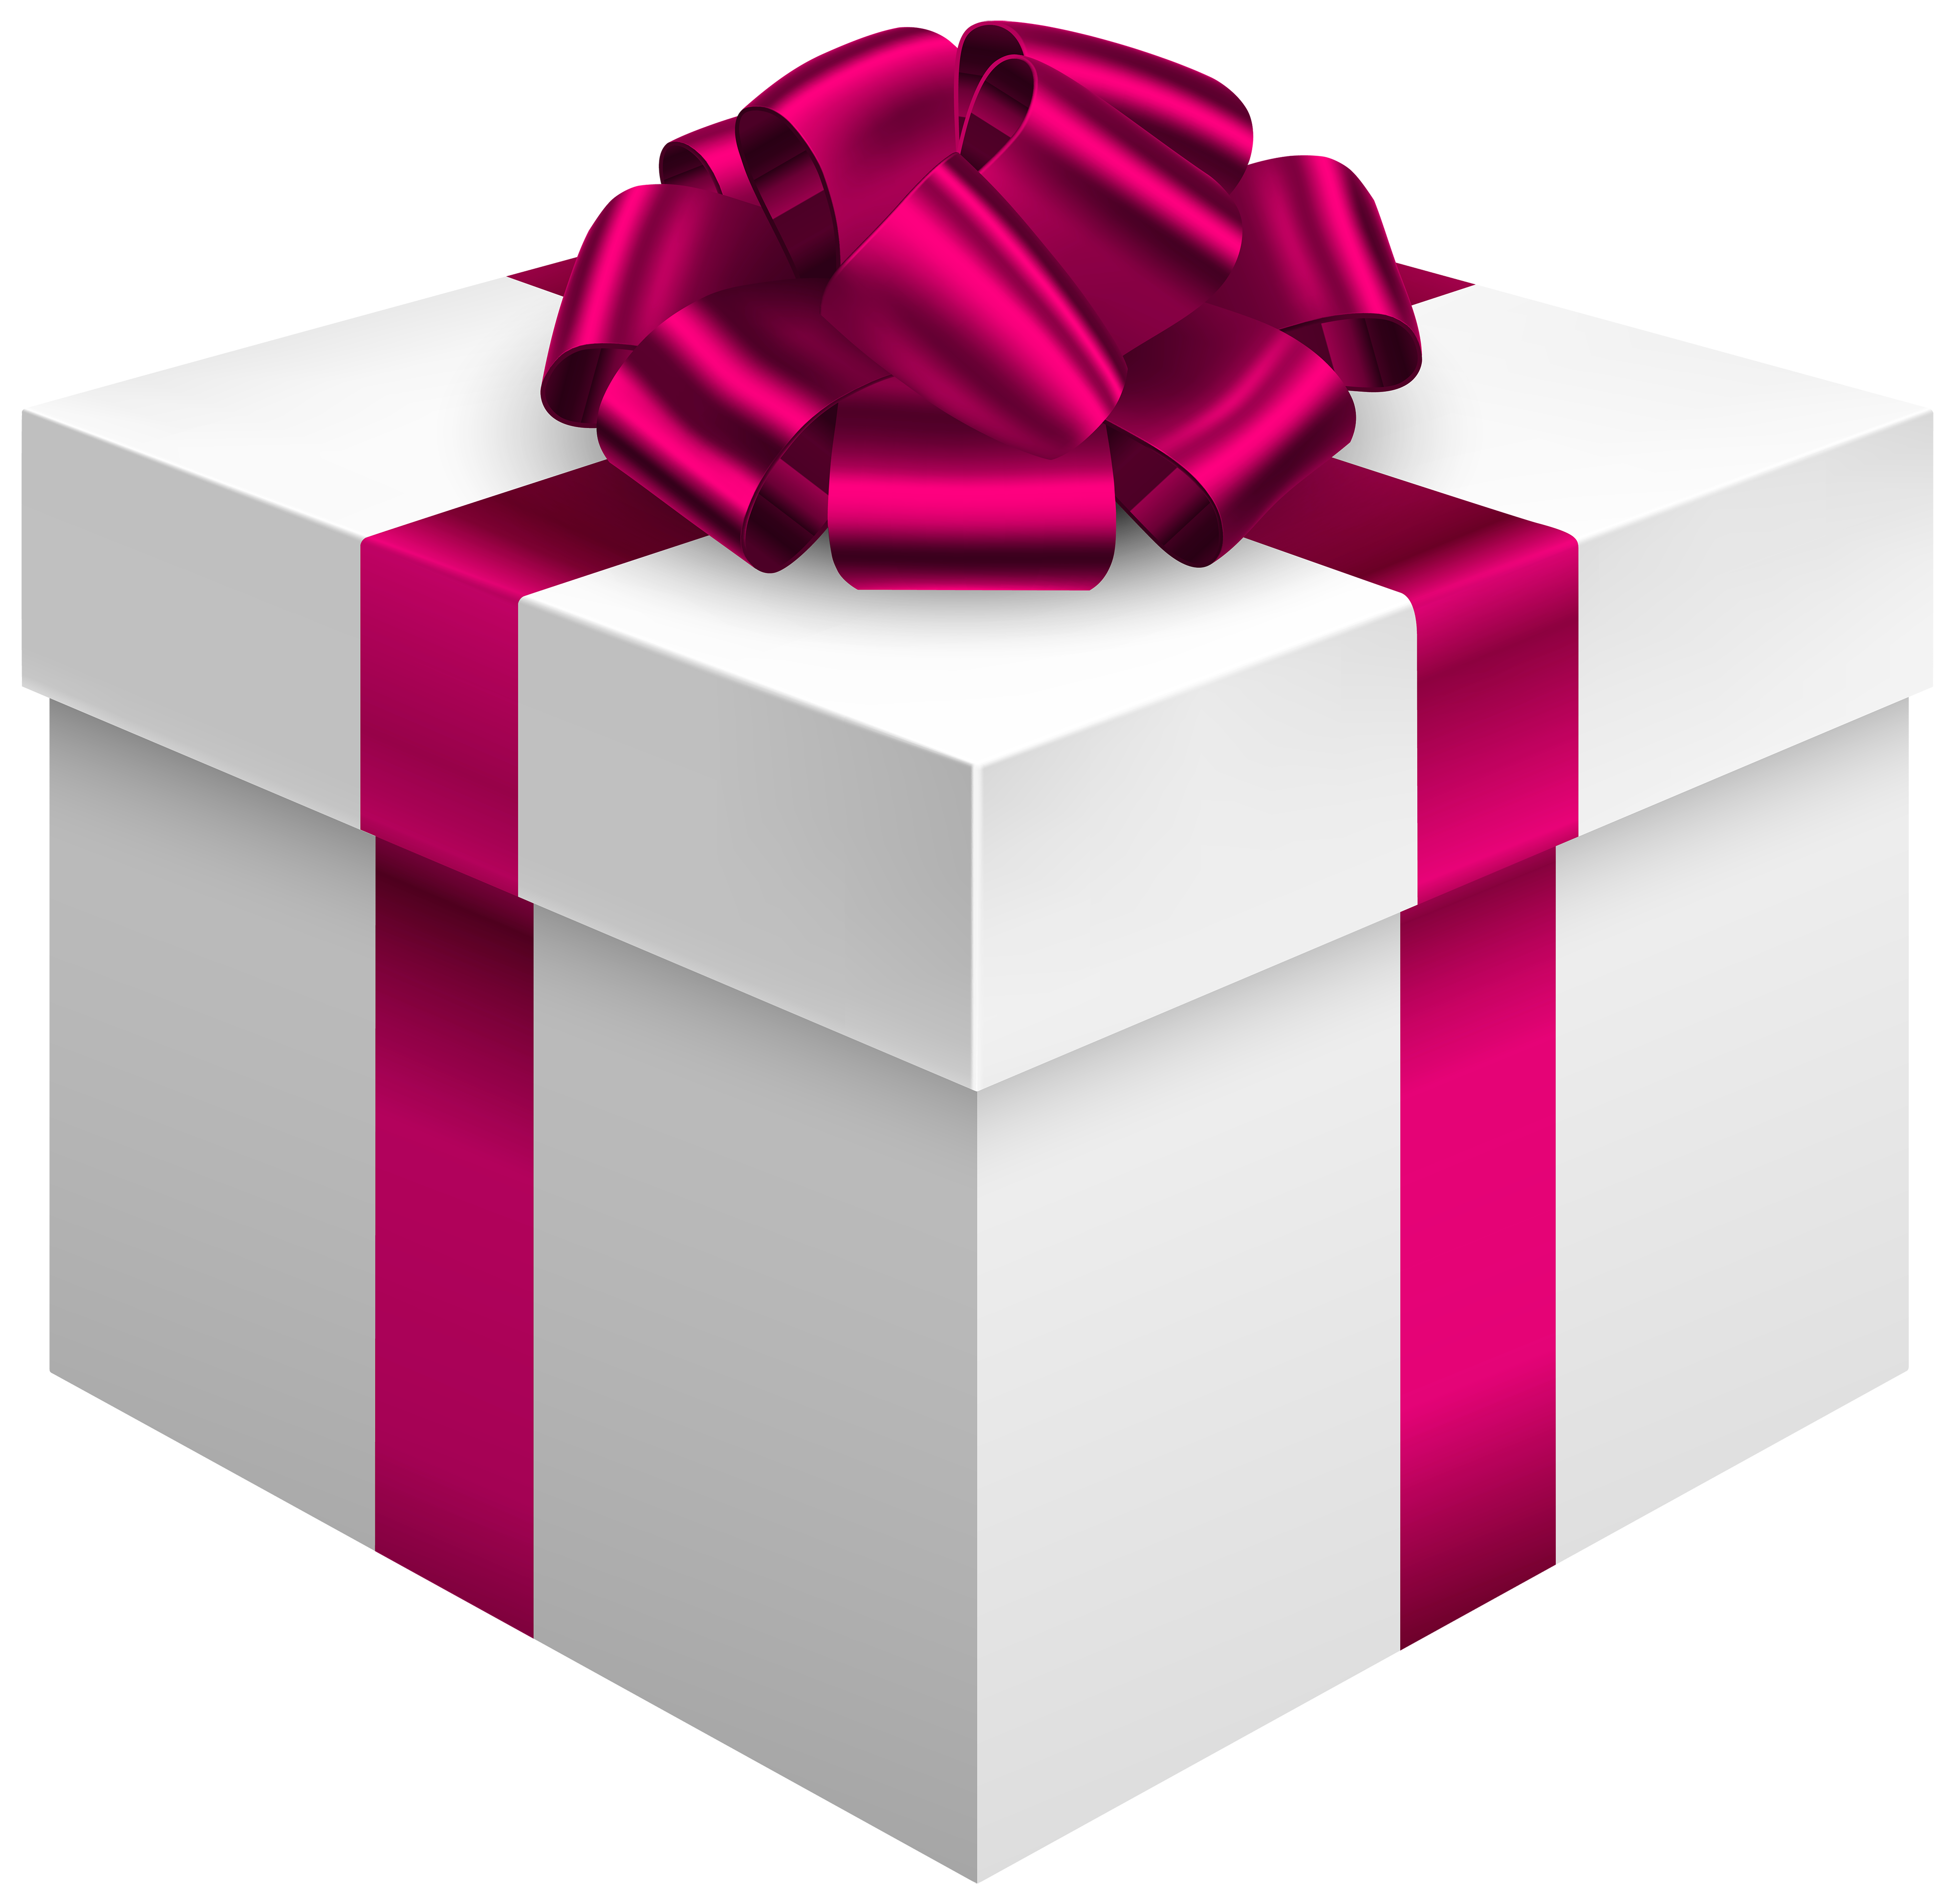 4000x3895 White Gift Box With Pink Bow Png Clipart